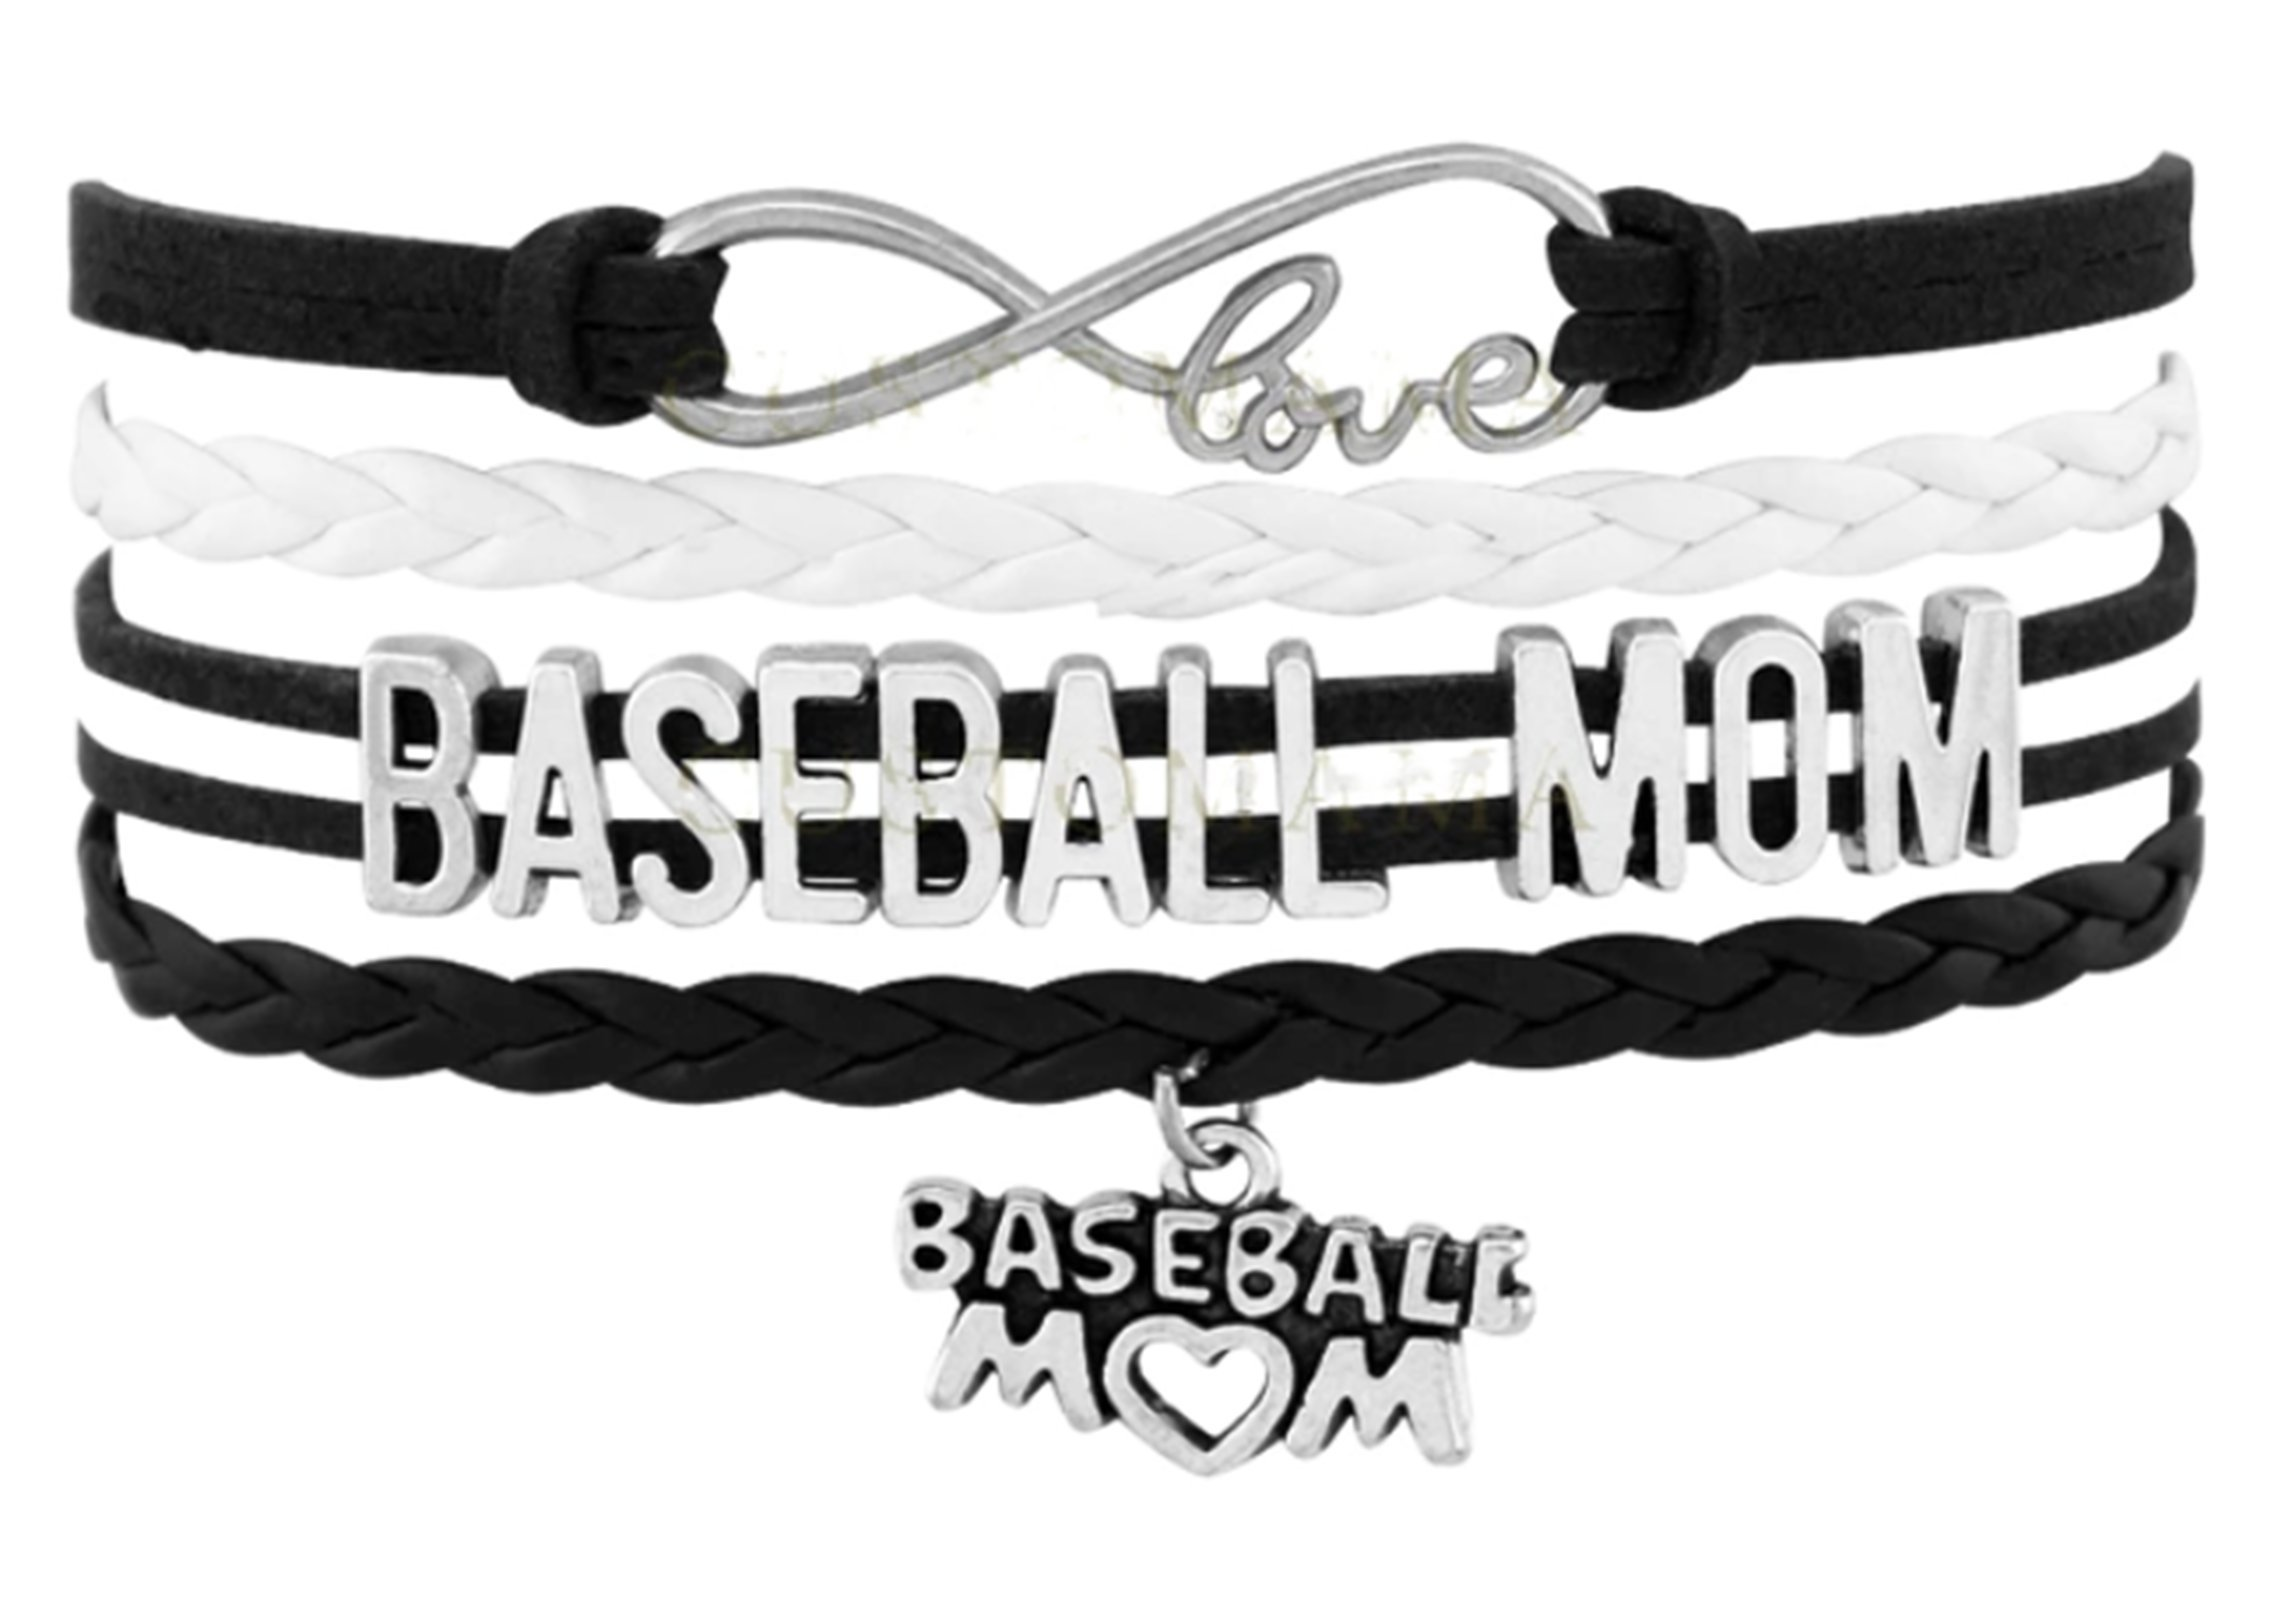 Best Wing Jewelry Baseball Mom Cord Braid Synthetic-Leather Warp Friendship Bracelets (Adjustable) (Black & White)